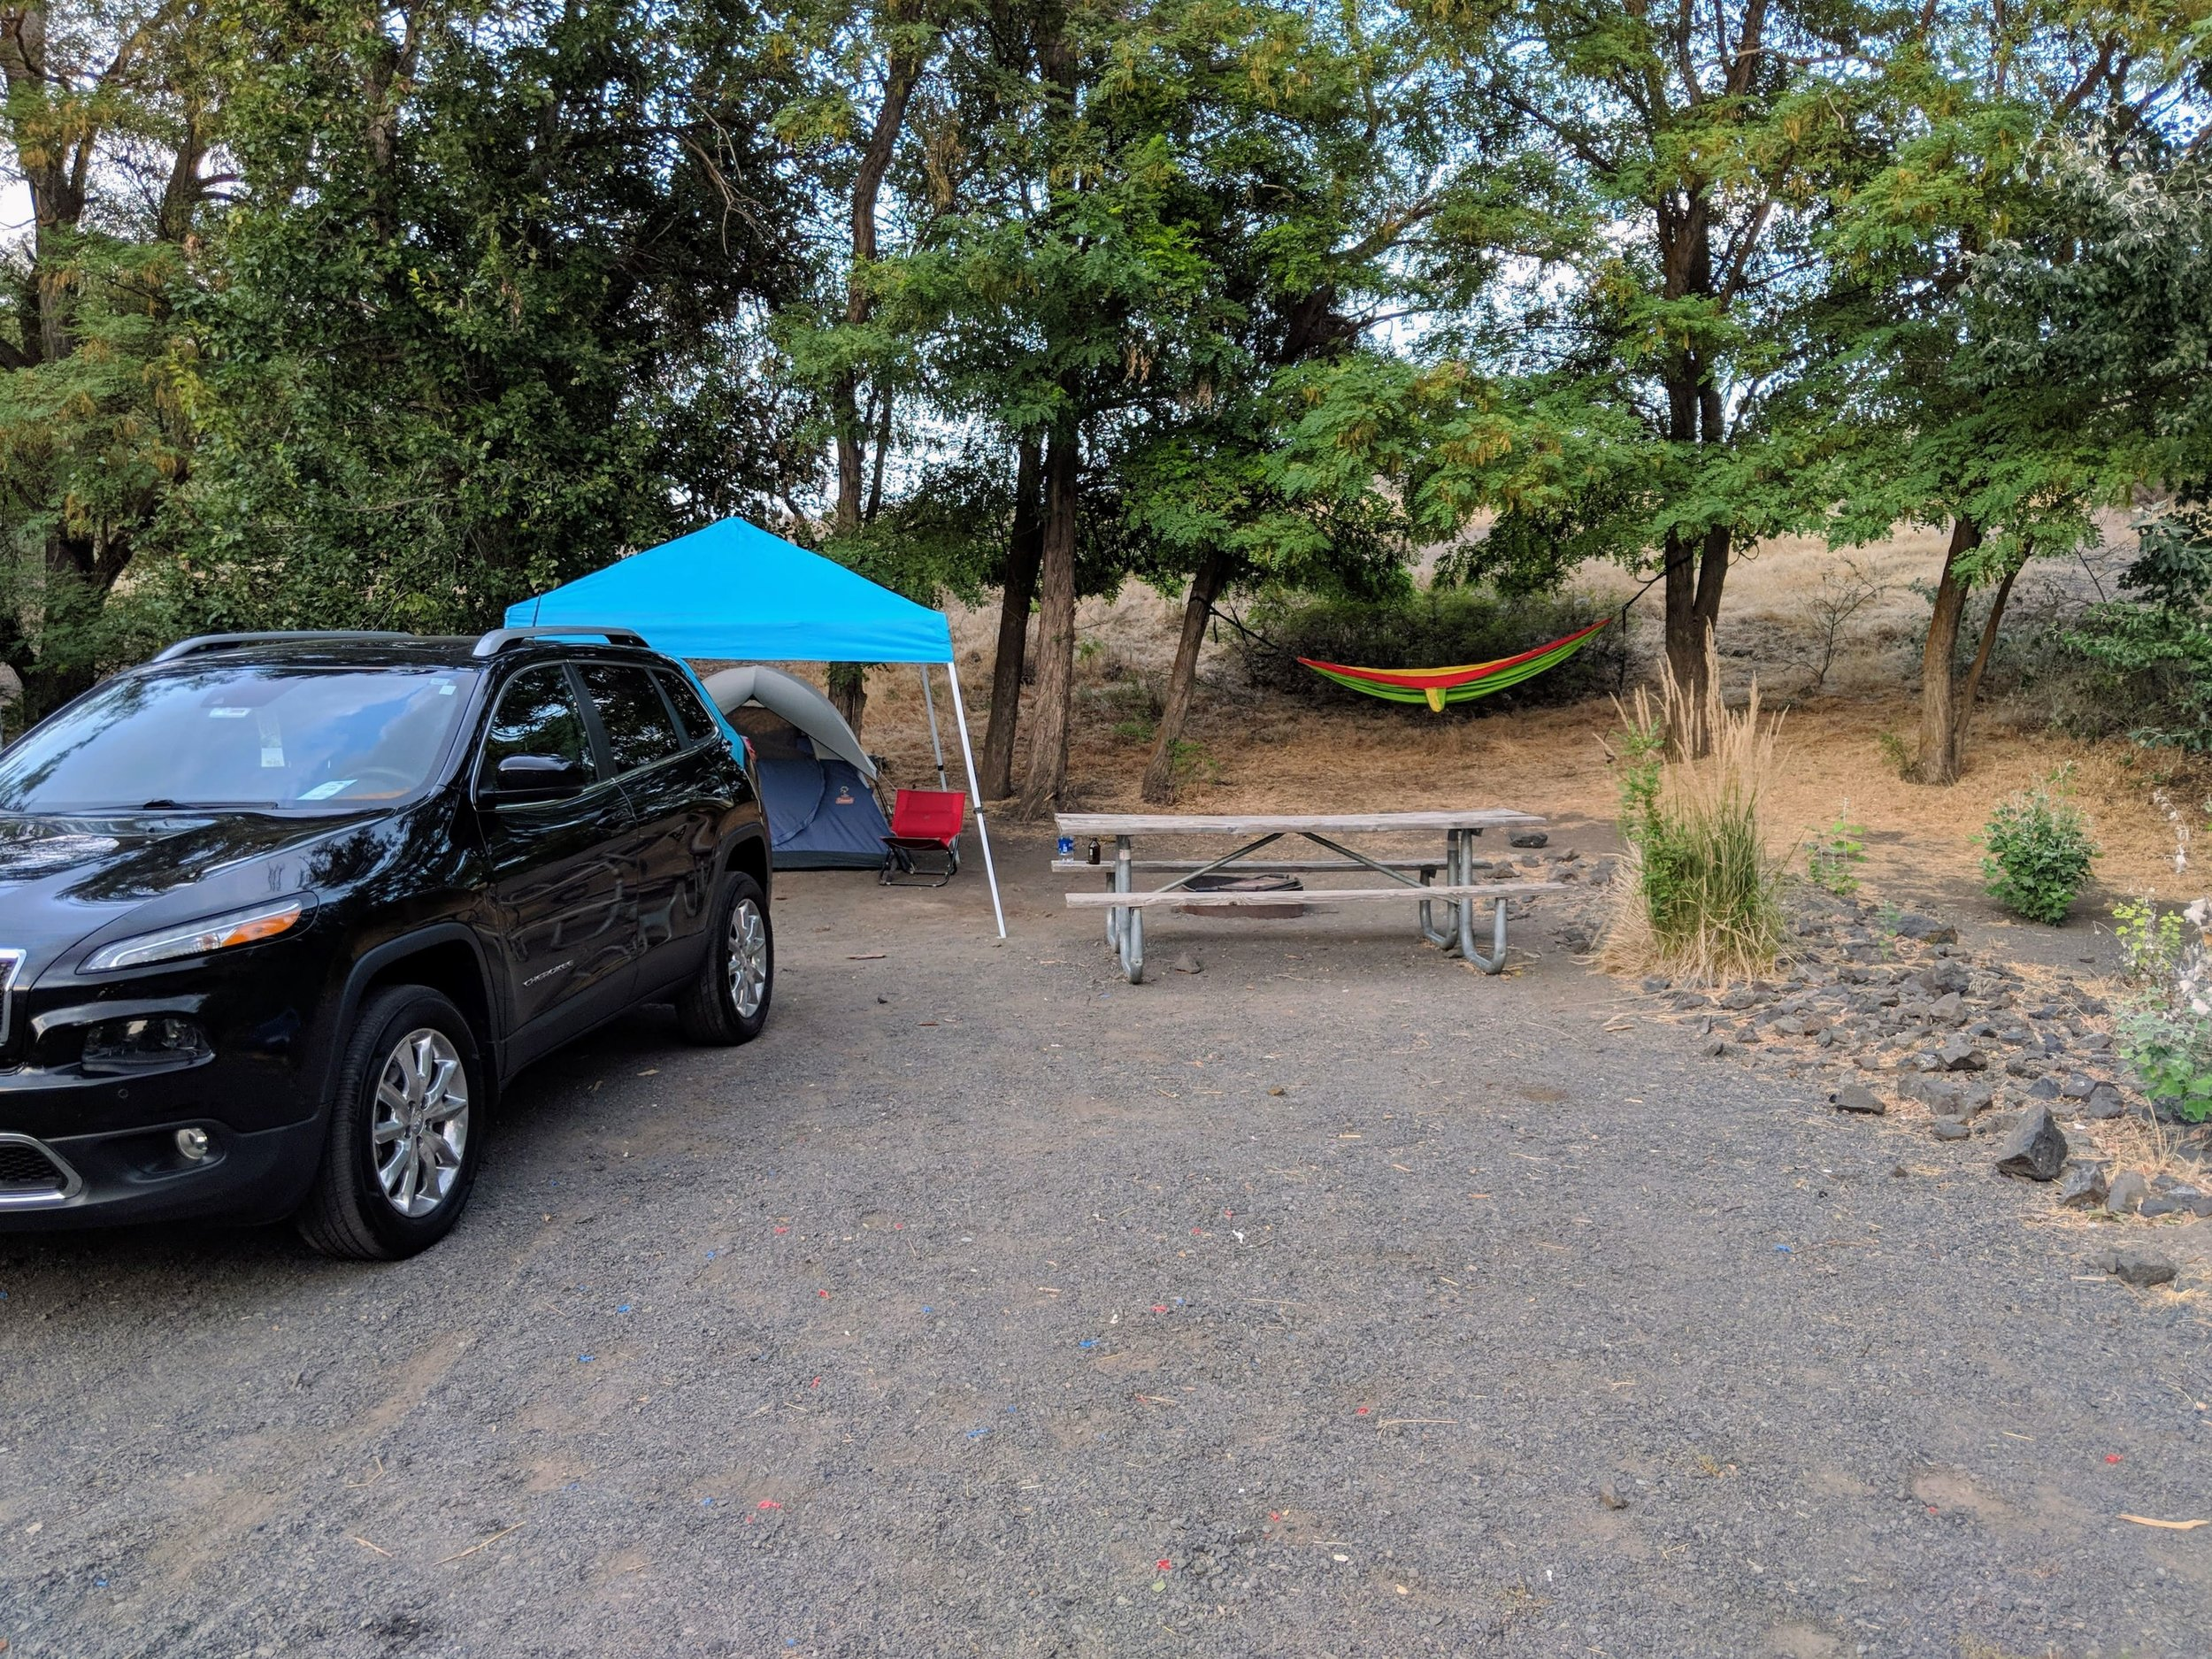 Campsite for two nights